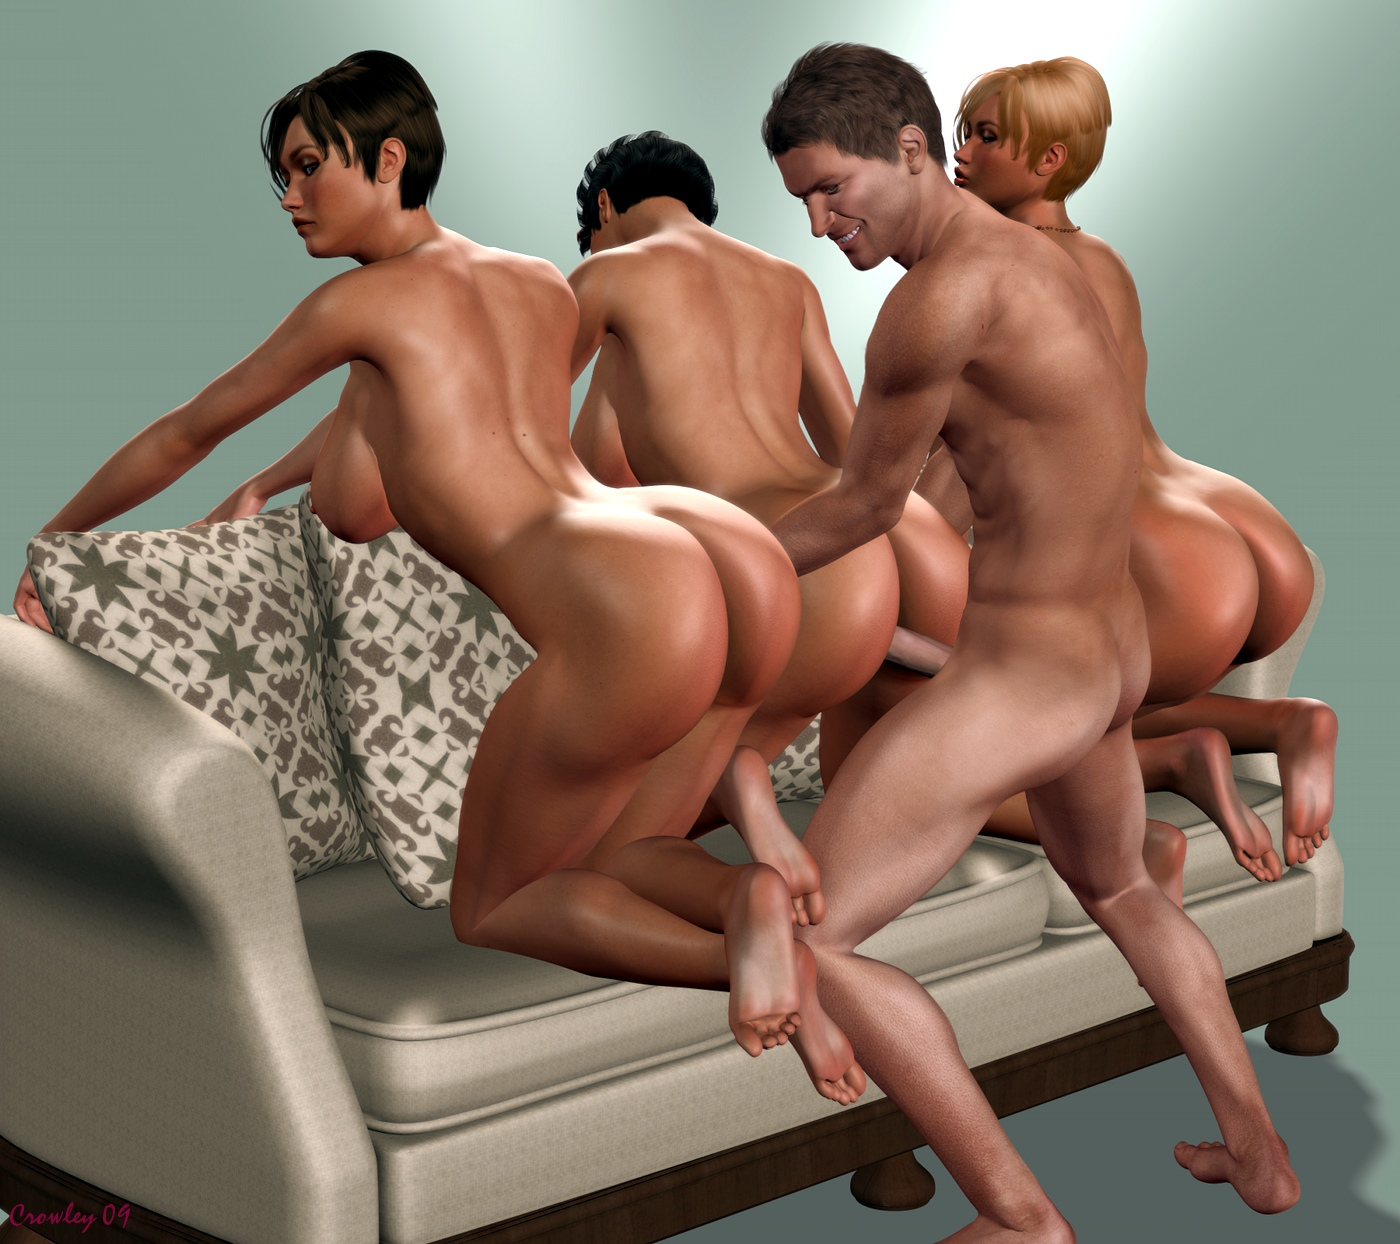 Realistic 3d sex cartoons naked picture